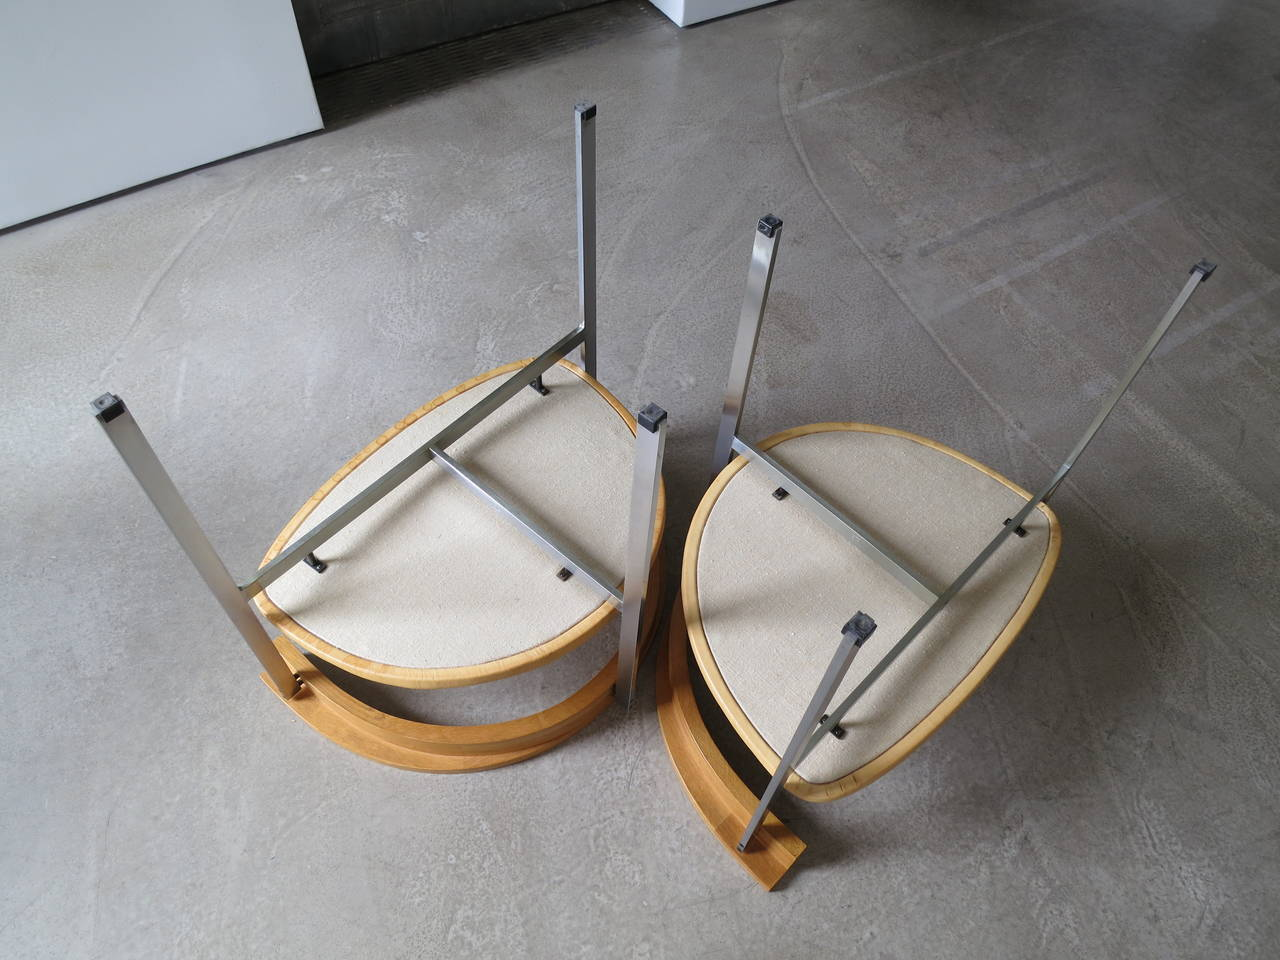 Pair of PK-11 Armchairs by Poul Kjærholm, made by E. Kold Christensen For Sale 1